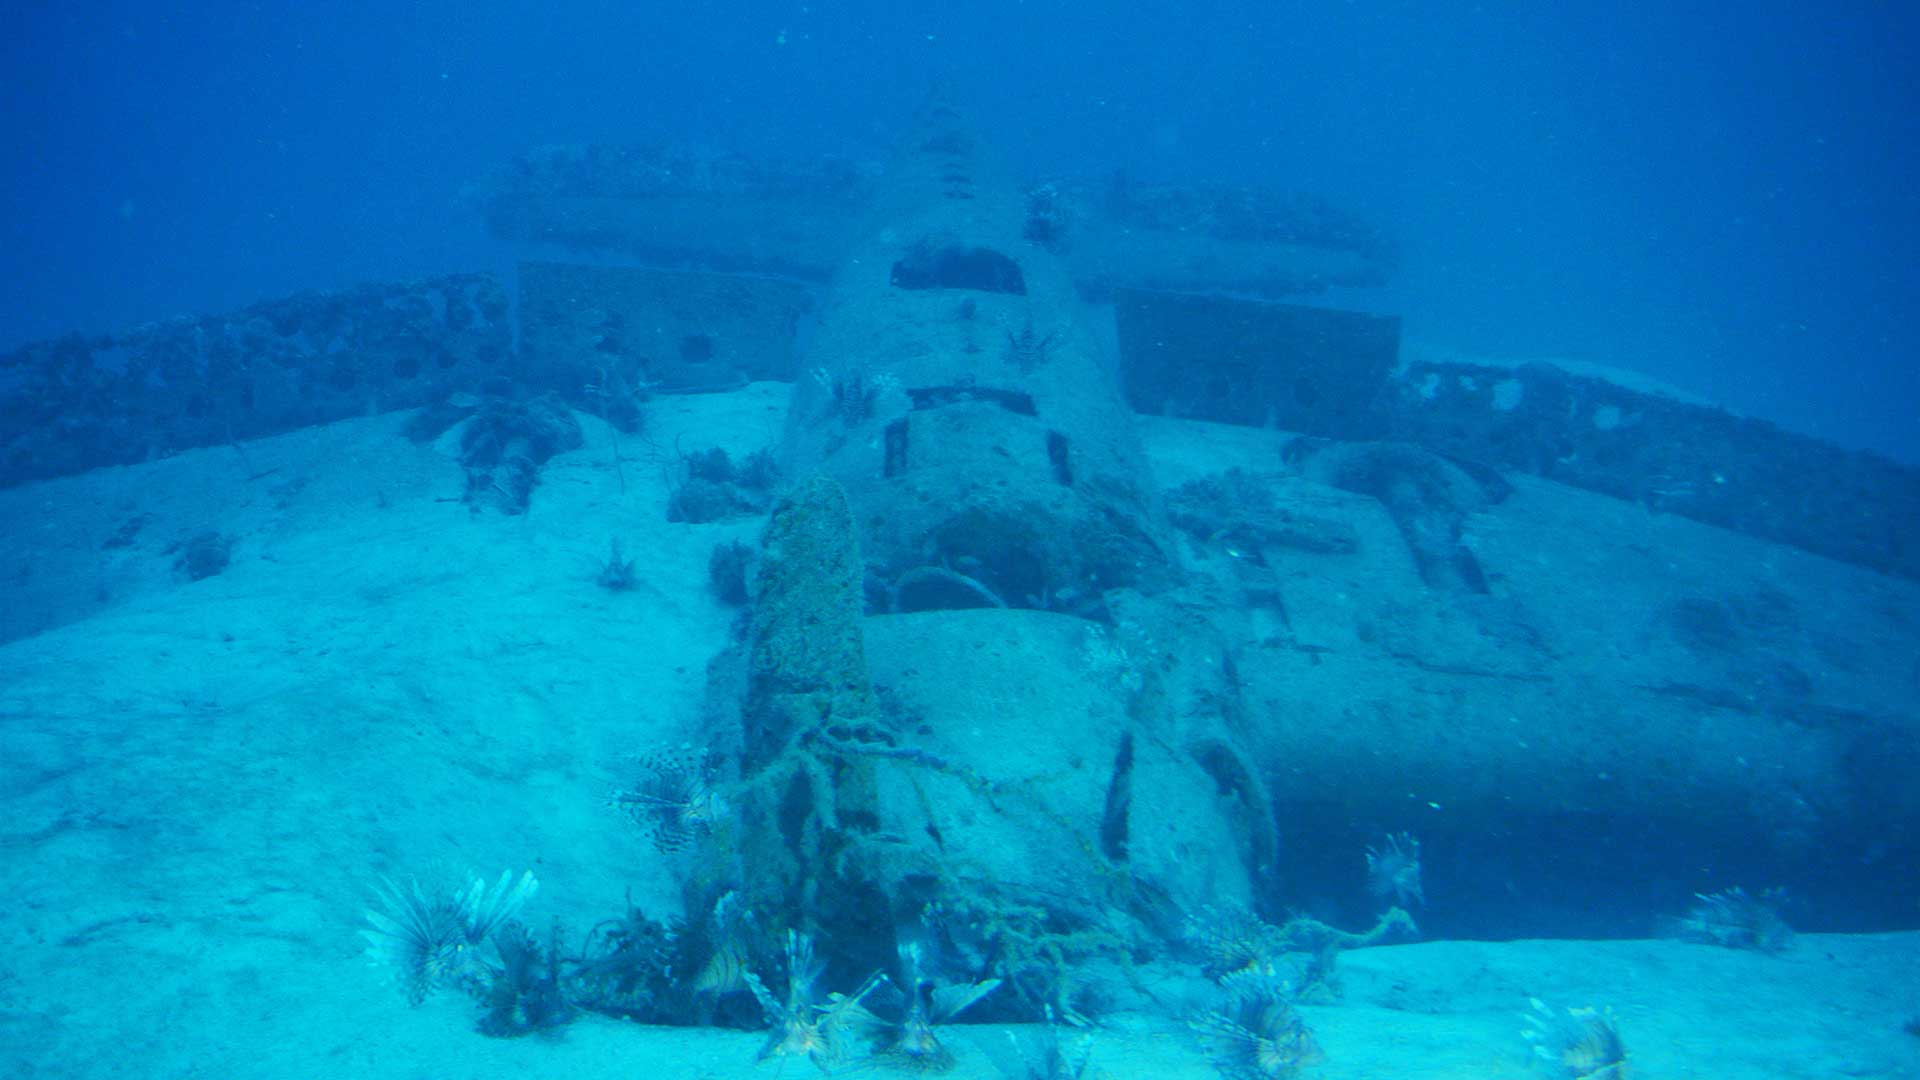 Photo of the F6F Hellcat on the sea floor